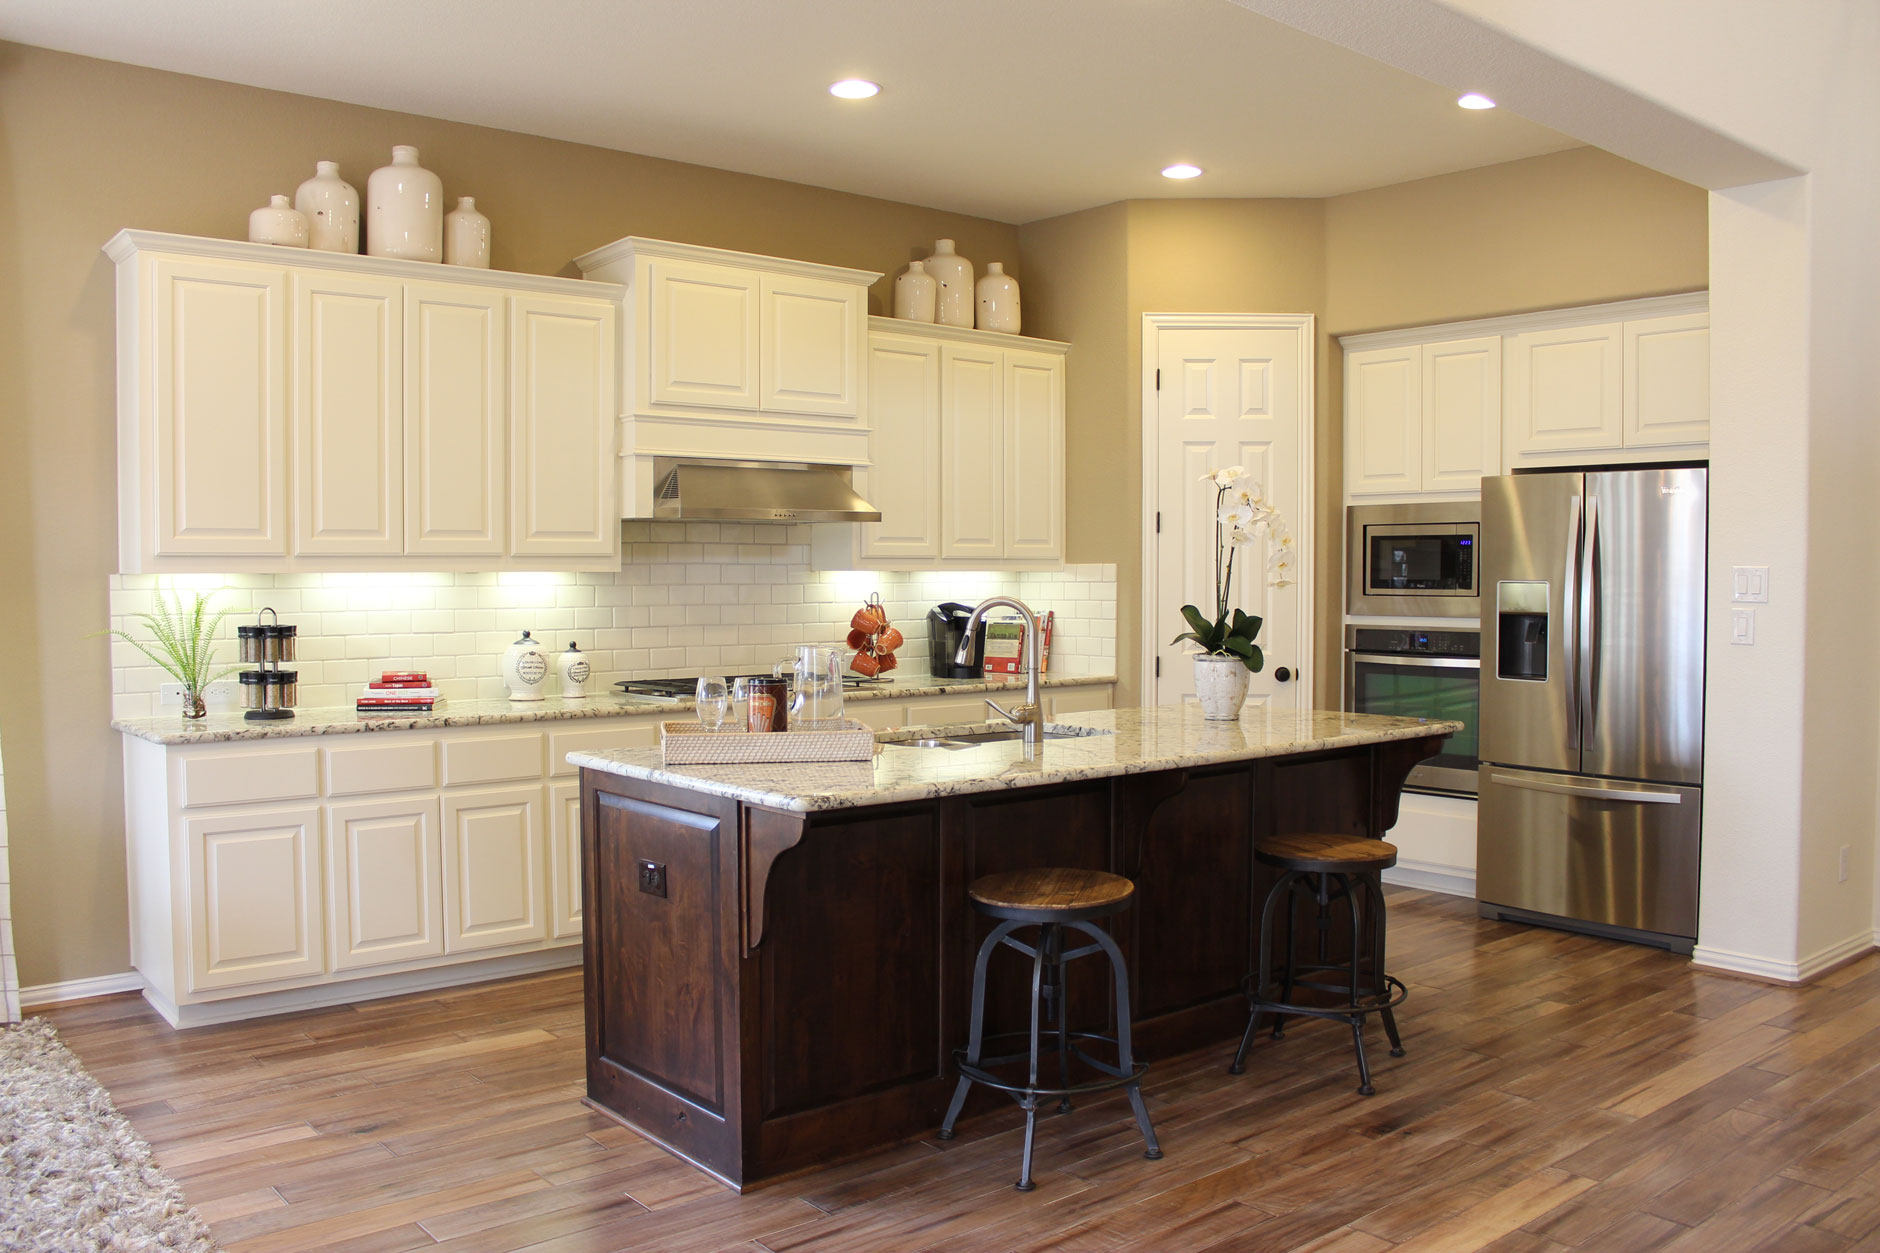 View Larger Image Kitchen Painted White With Cabinet Doors ...